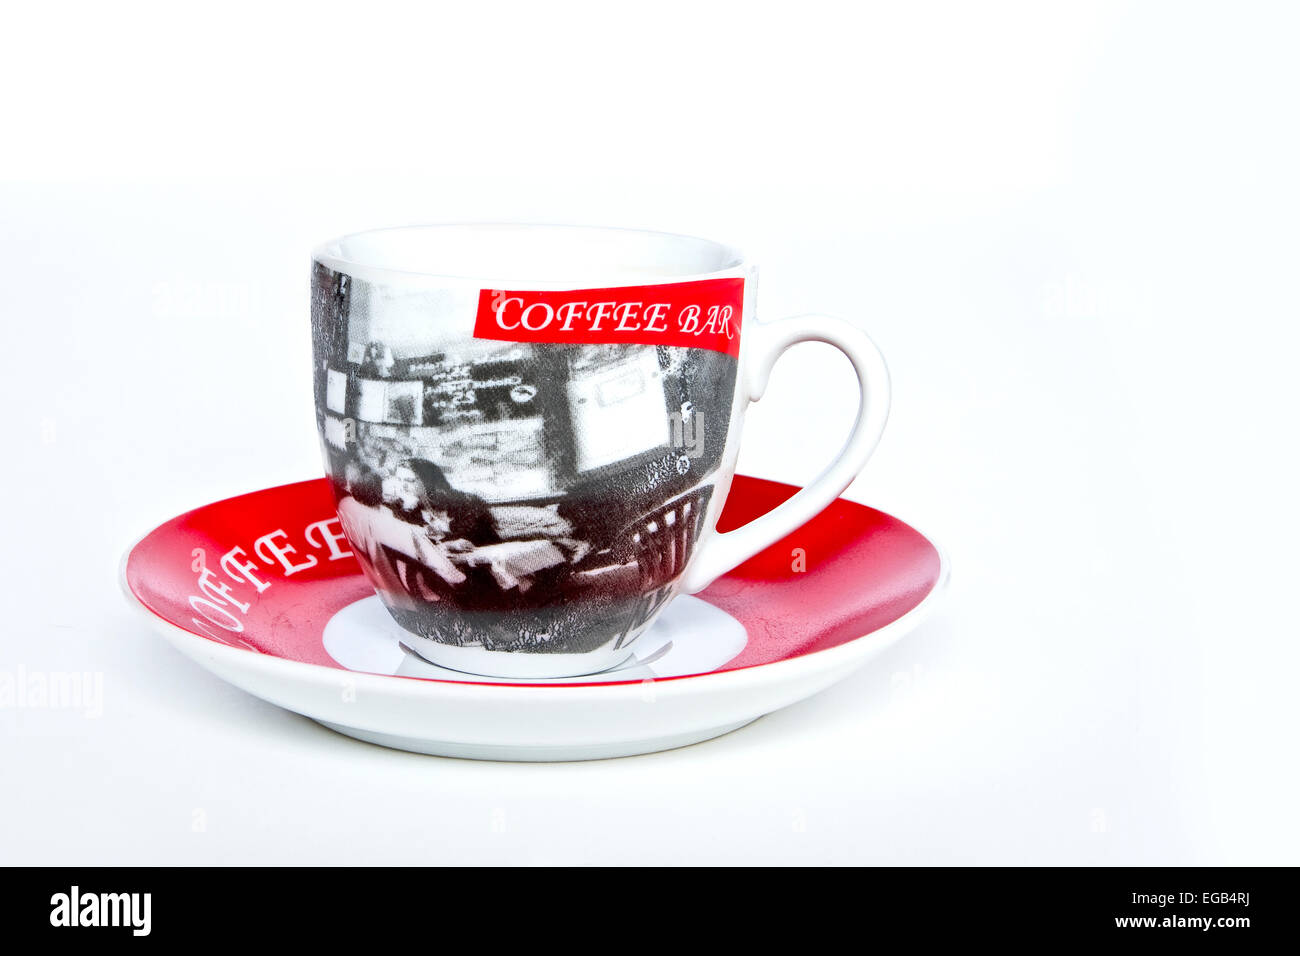 Small Coffee Cups And Saucers Small Espresso Coffee Cup And Saucer Stock Photo 78921238 Alamy